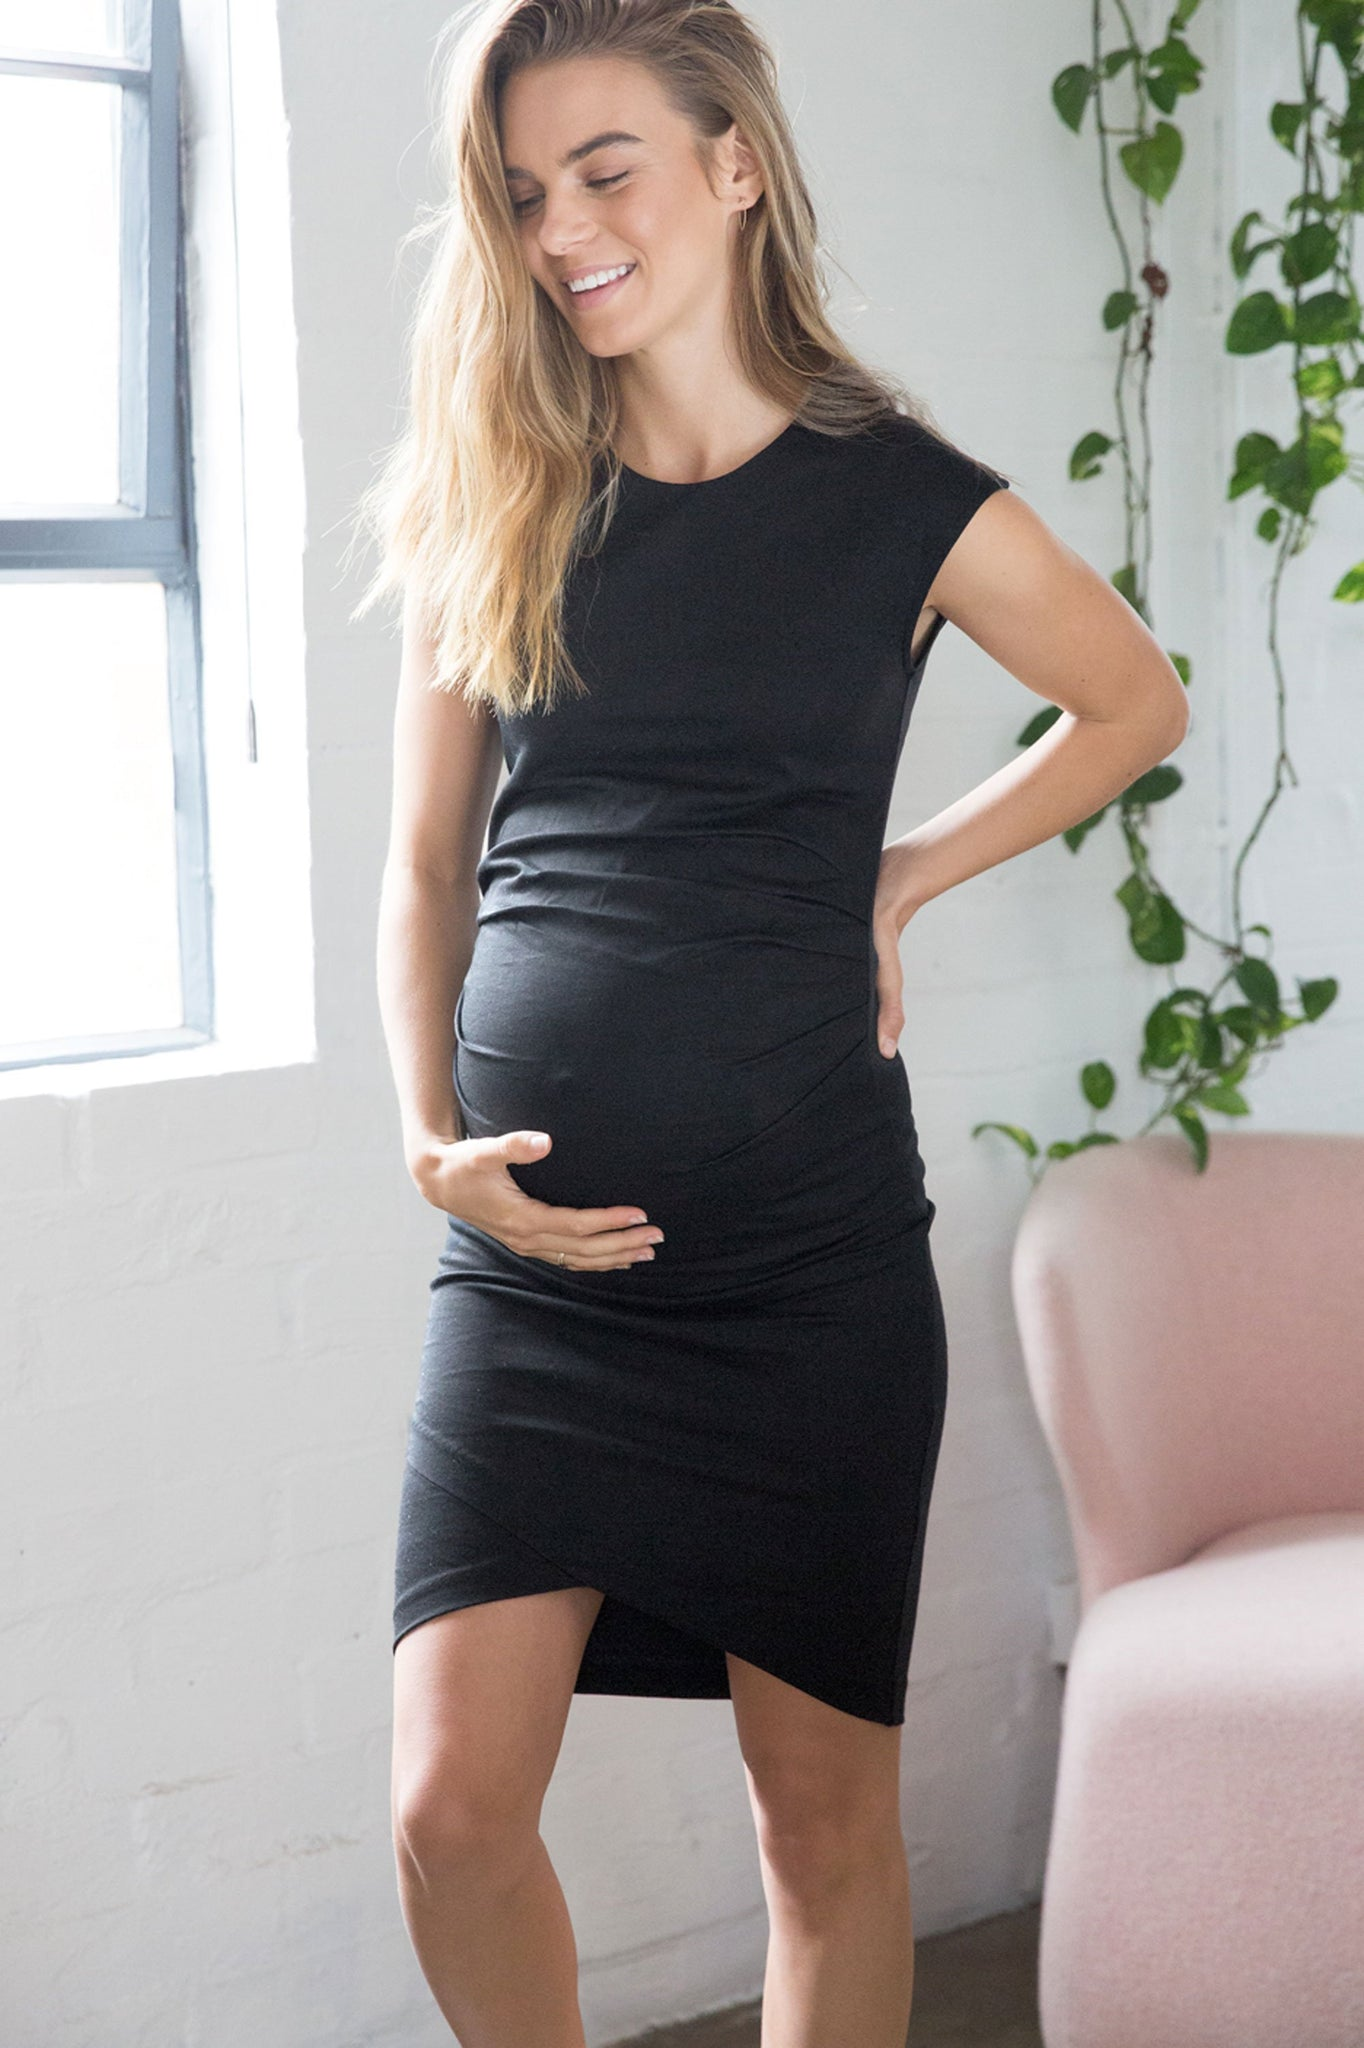 Black Maternity Dress - Formal Maternity Dress 8